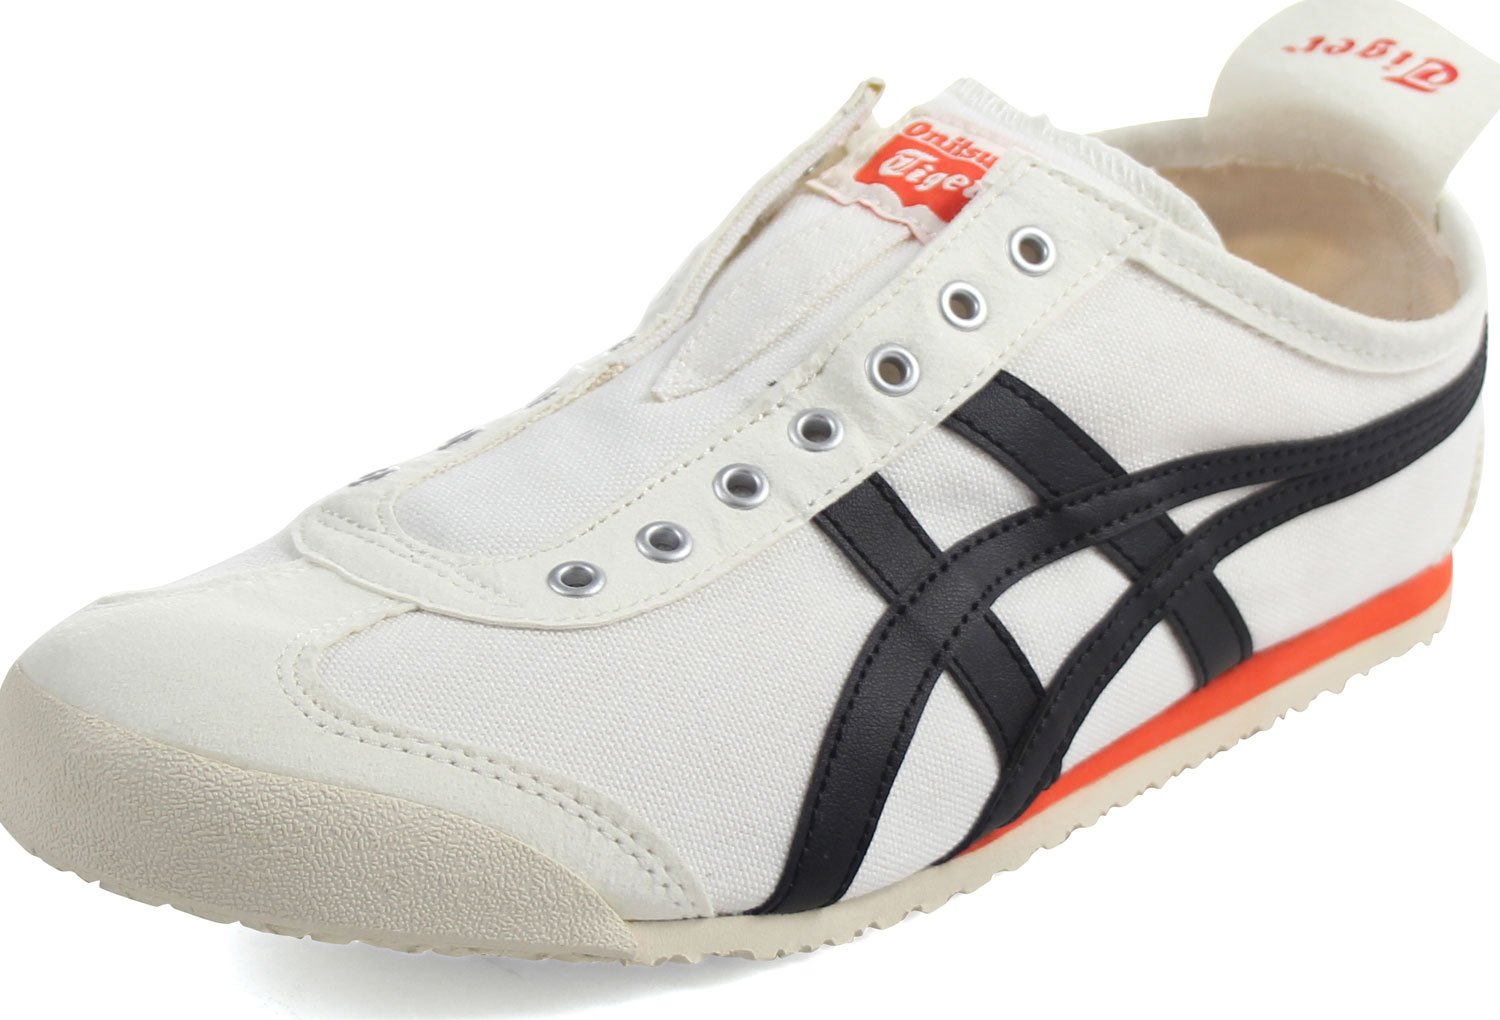 Onitsuka Tiger Mexico 66 Slip-On Classic Running Sneaker B01N2VPU34 9 B(M) US Women / 7.5 D(M) US Men|Cream/Black